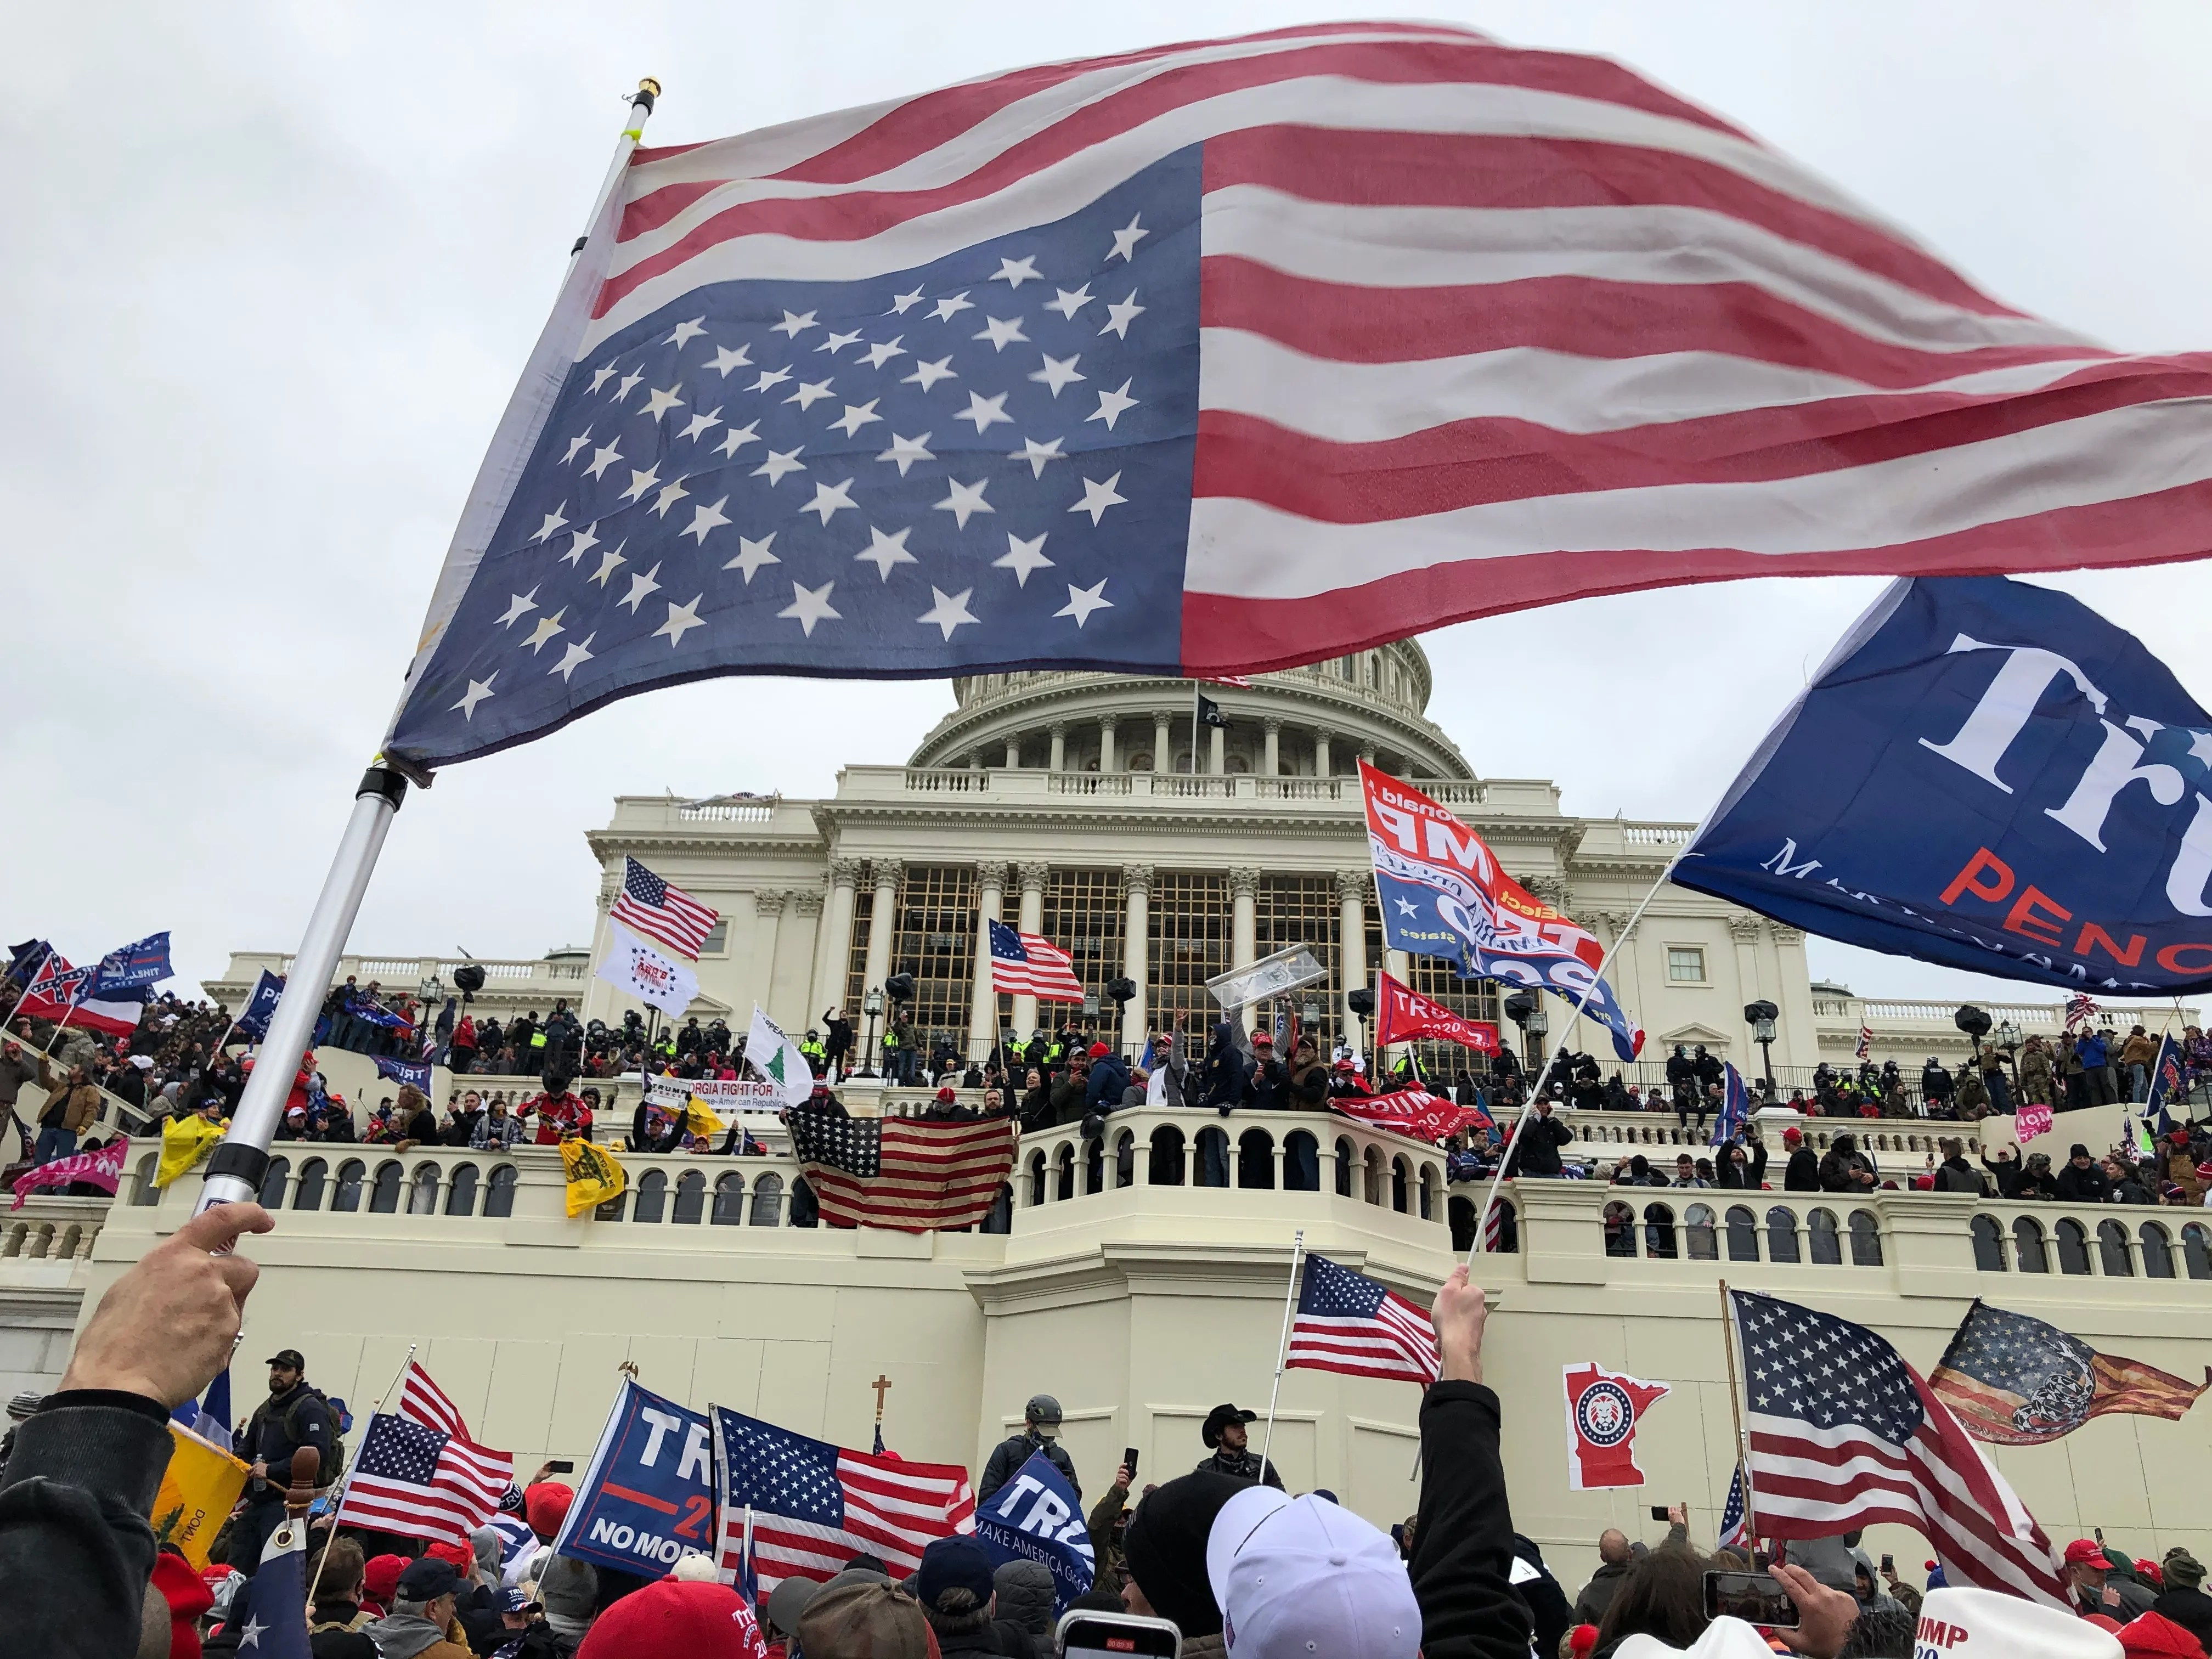 Pro-Trump rioters stand on the West front of the U.S. Capitol building during the Jan. 6, 2021 insurrection.